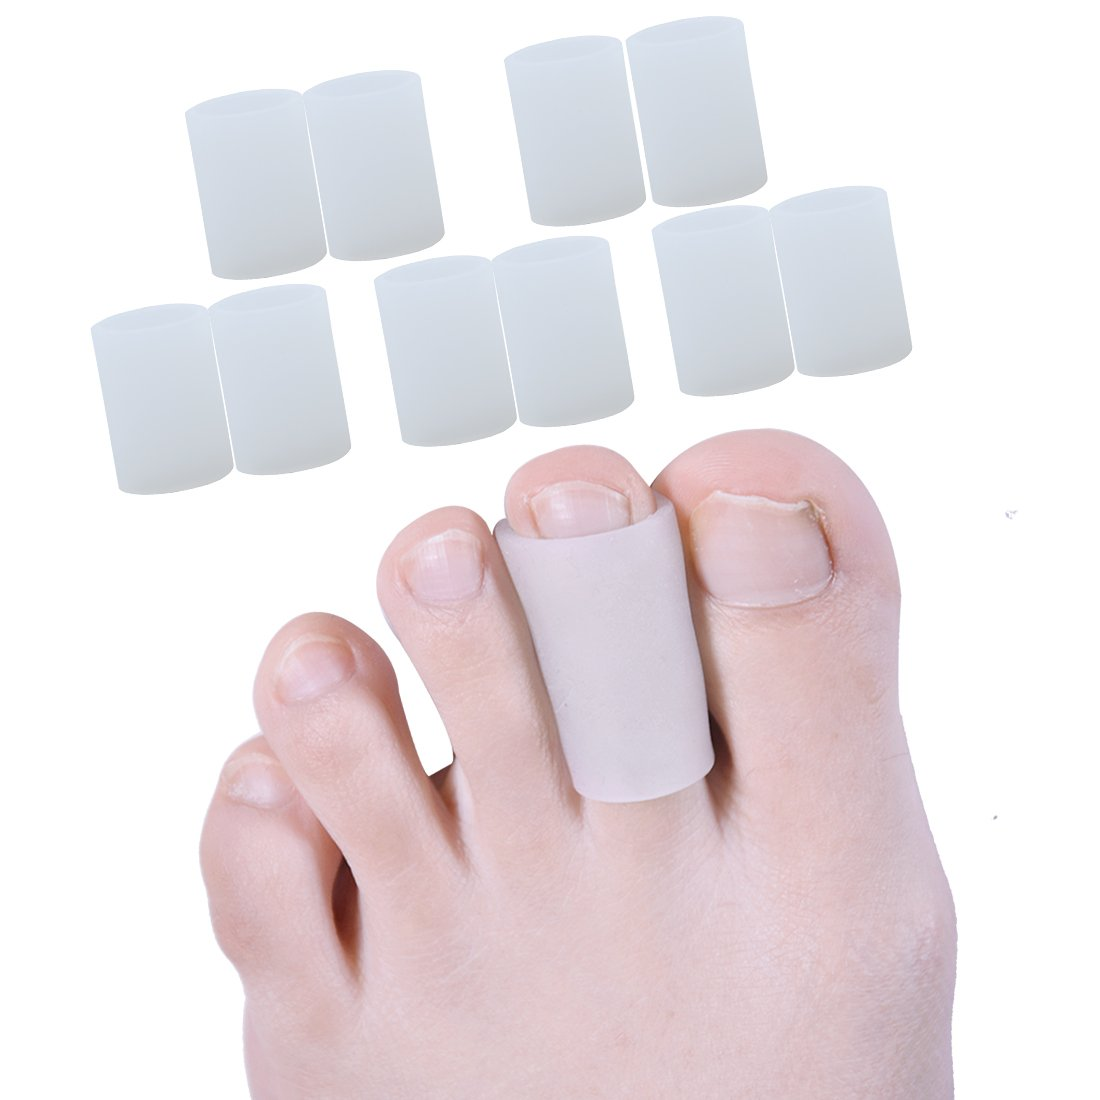 Sumiwish Gel Toe Sleeves, Silicone Toe Protectors, Cuttable Toe Tubes for Stubbed Toe, Sore Toes, Corns and Calluses, Protect Damaged Toes 5 Pairs Silicone Toe Sleeves